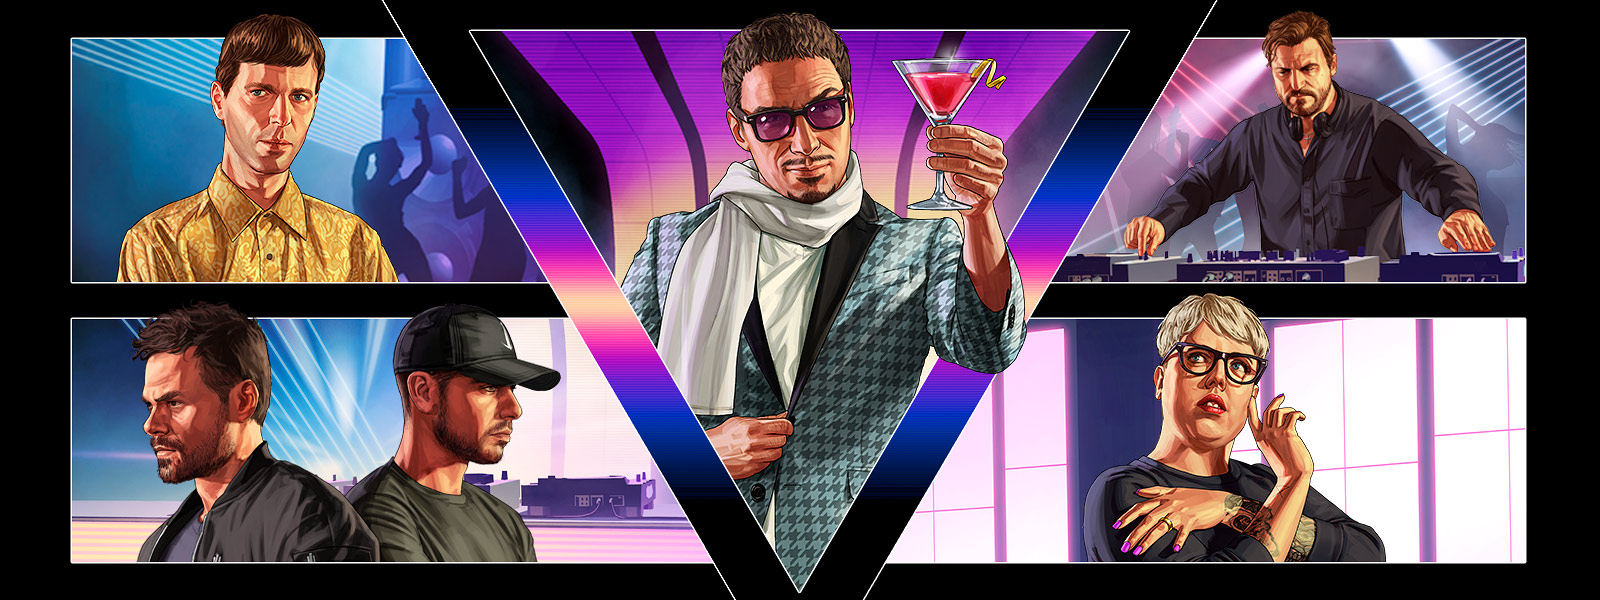 Grand Theft Auto Online After Hours, colagem de diversas personagens numa discoteca